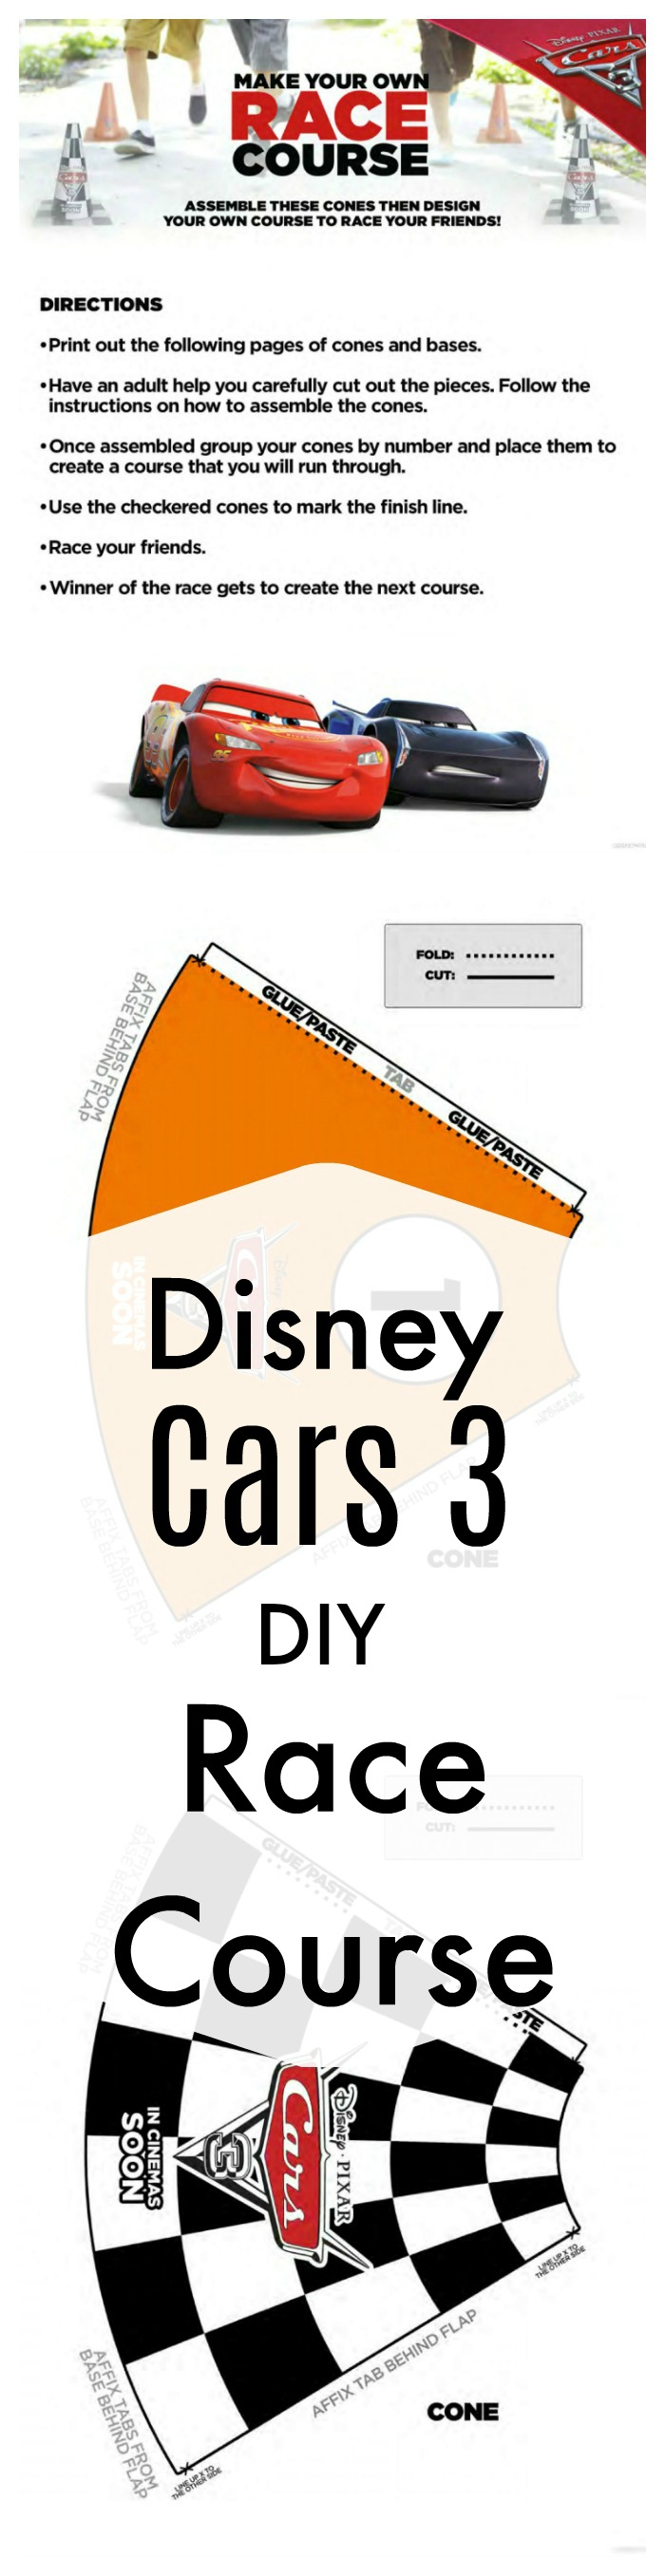 Disney Cars 3 Printable DIY Race Course Game